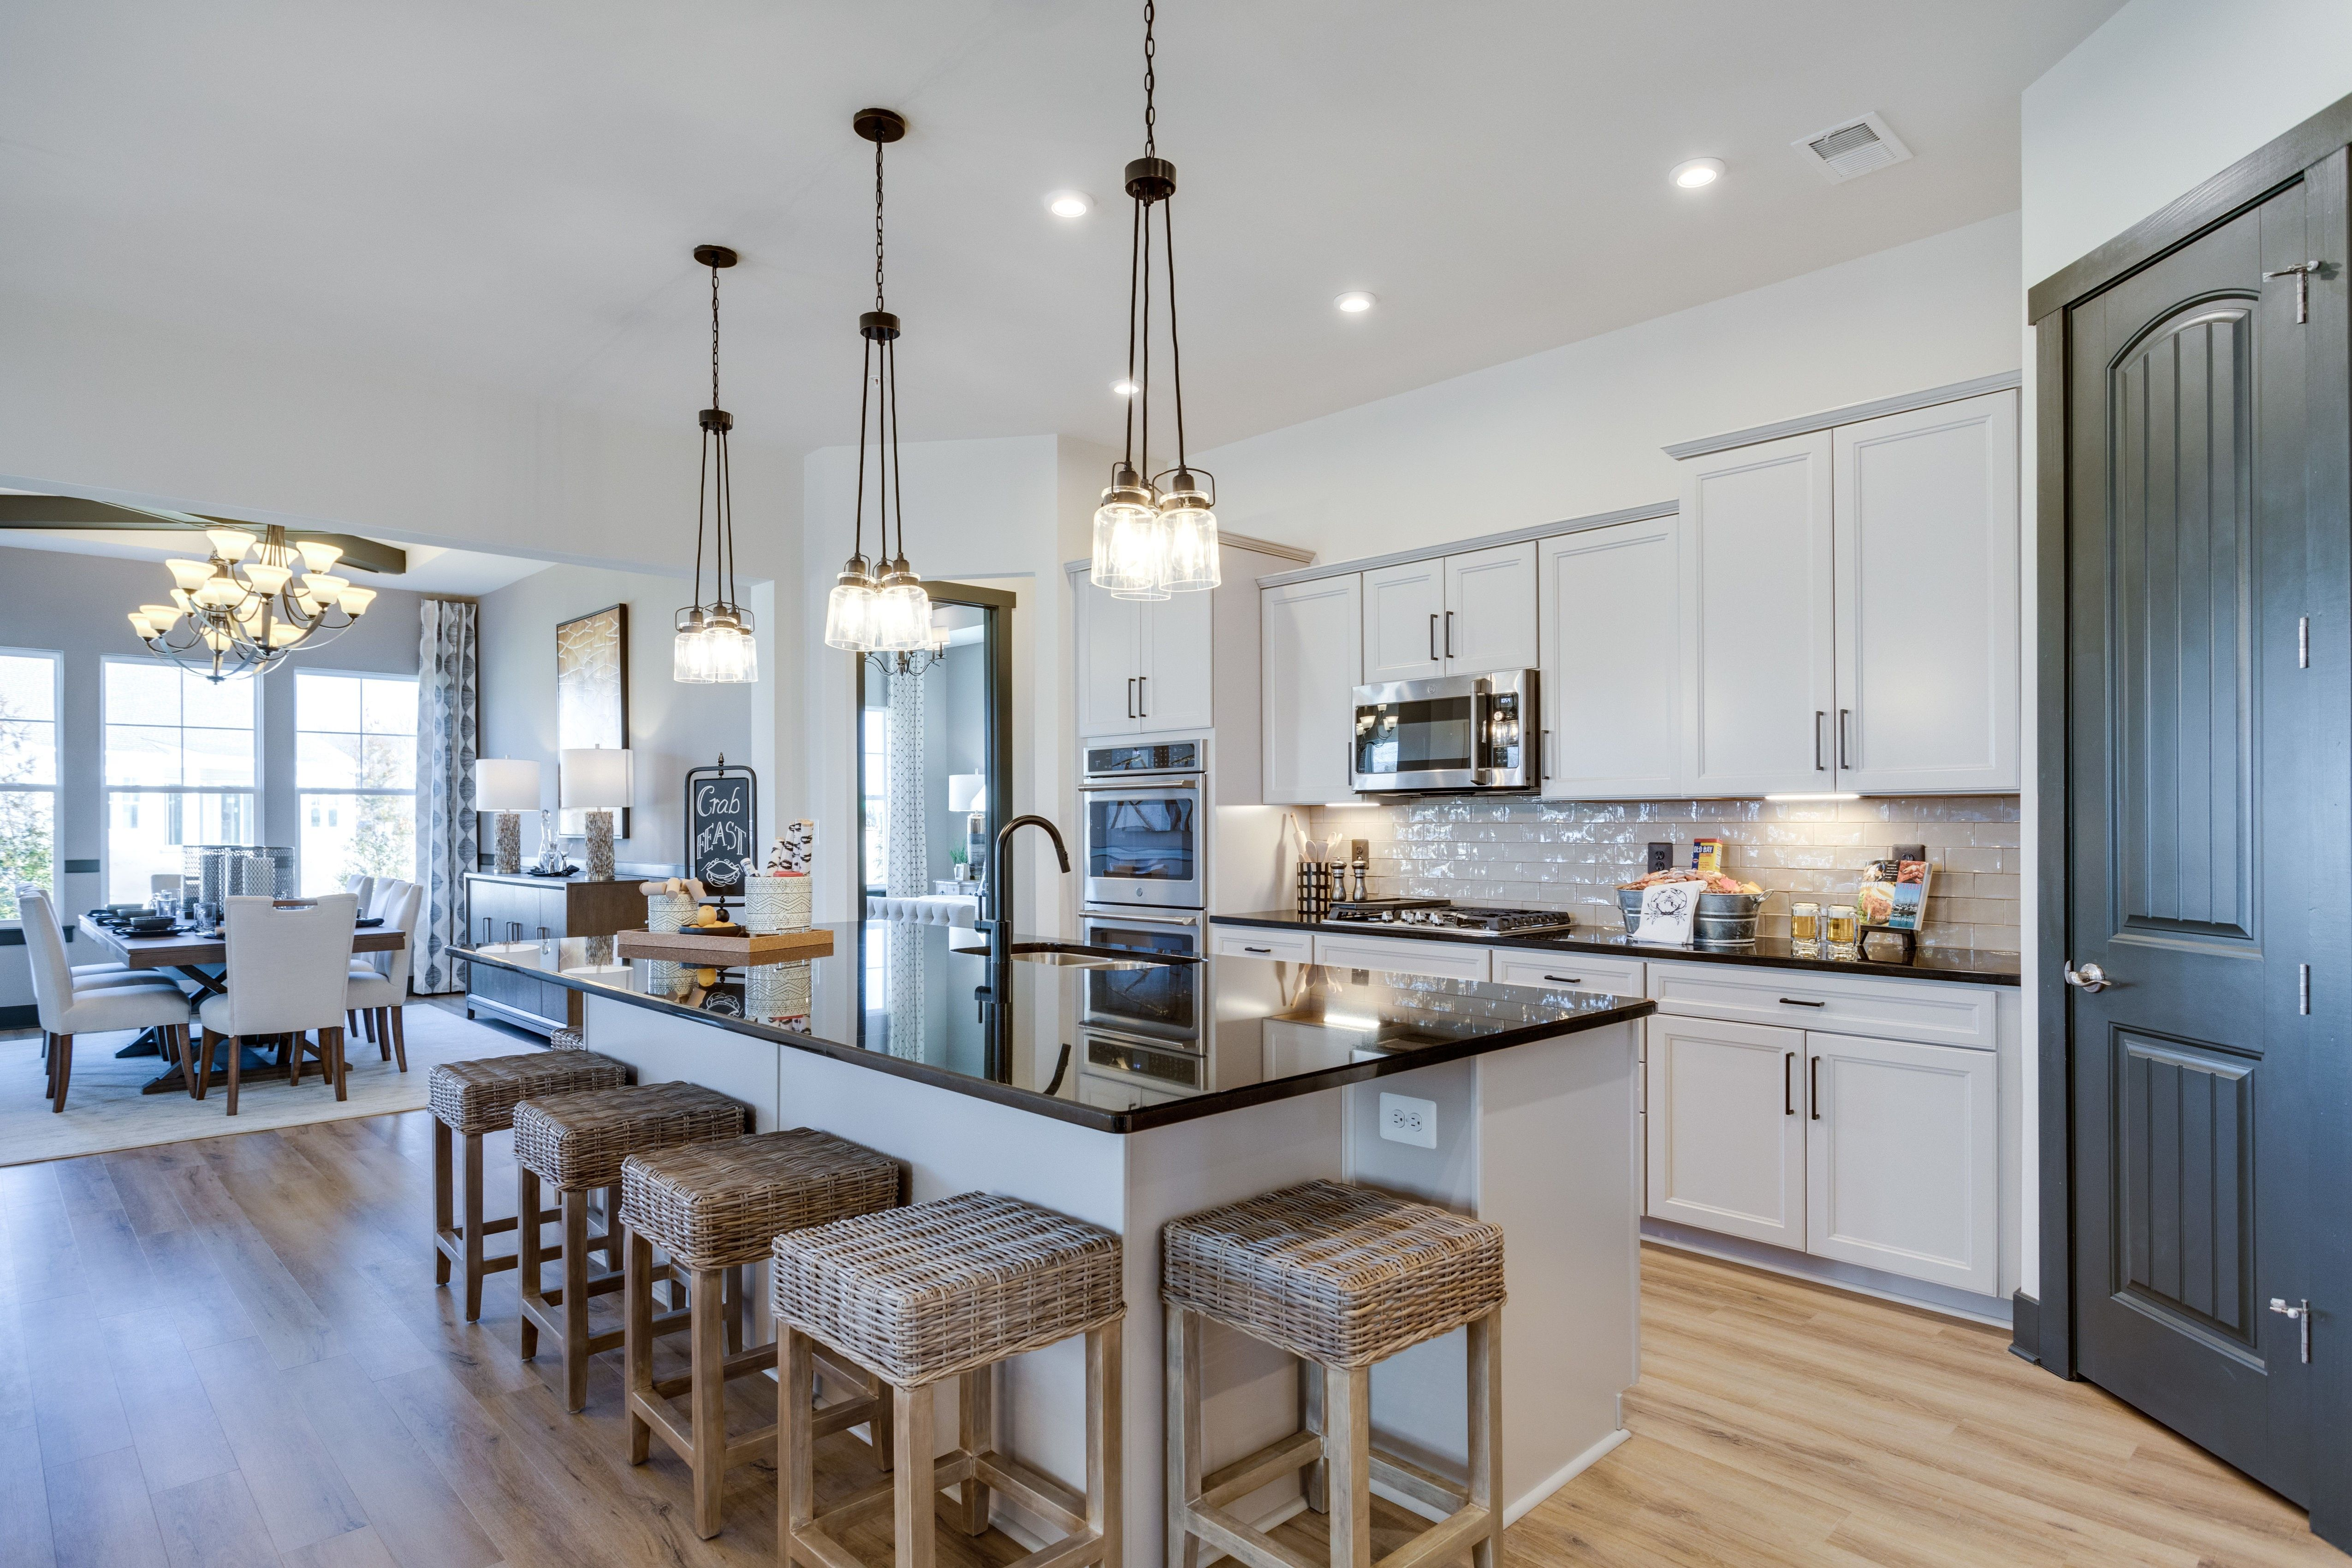 Kitchen featured in the Killarney I By K. Hovnanian's® Four Seasons in Eastern Shore, MD